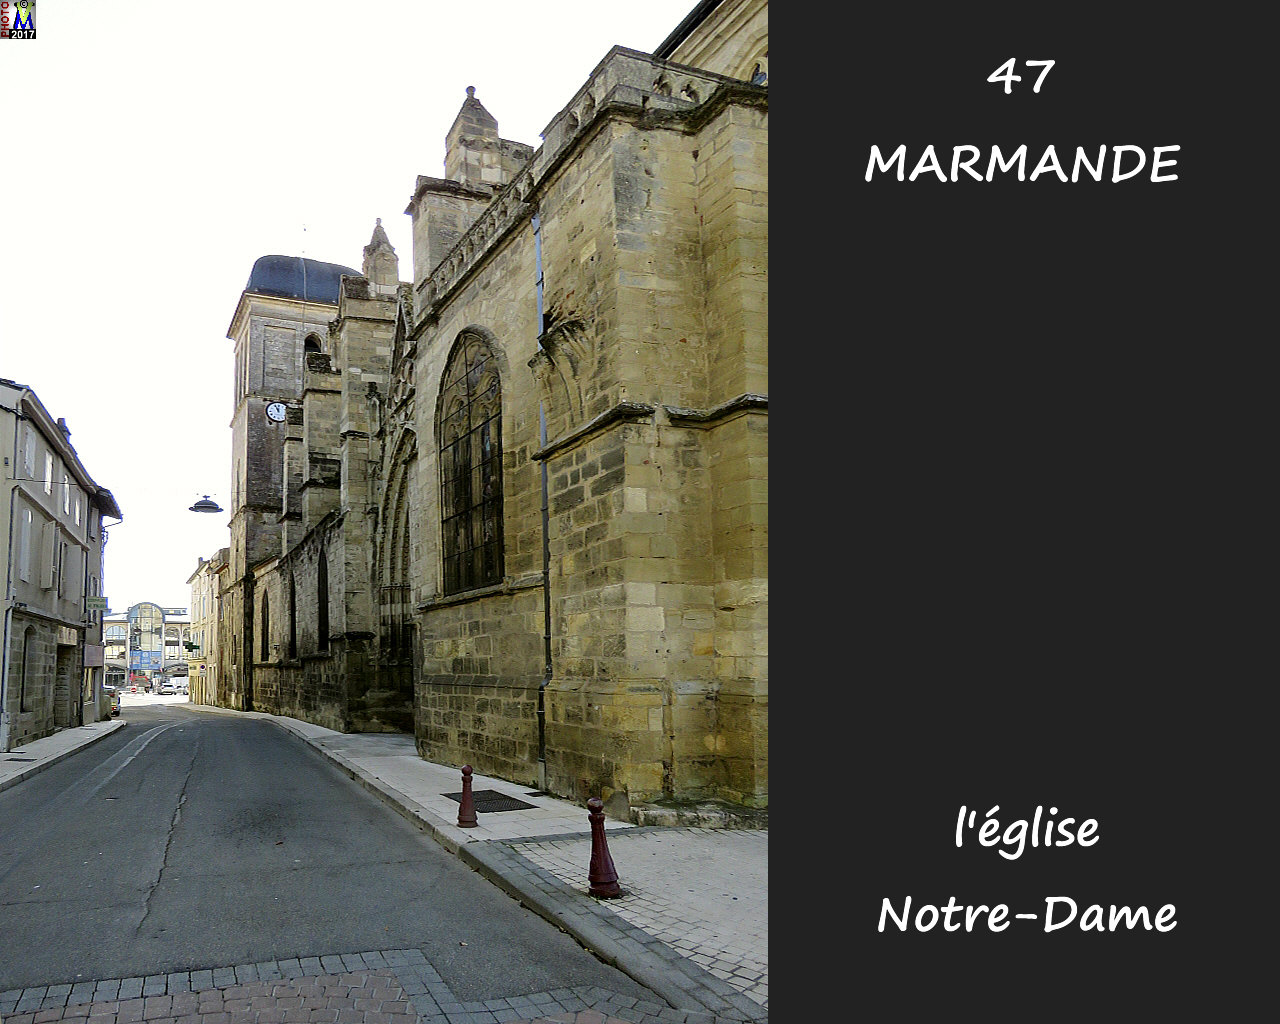 47MARMANDE_eglise_1012.JPG